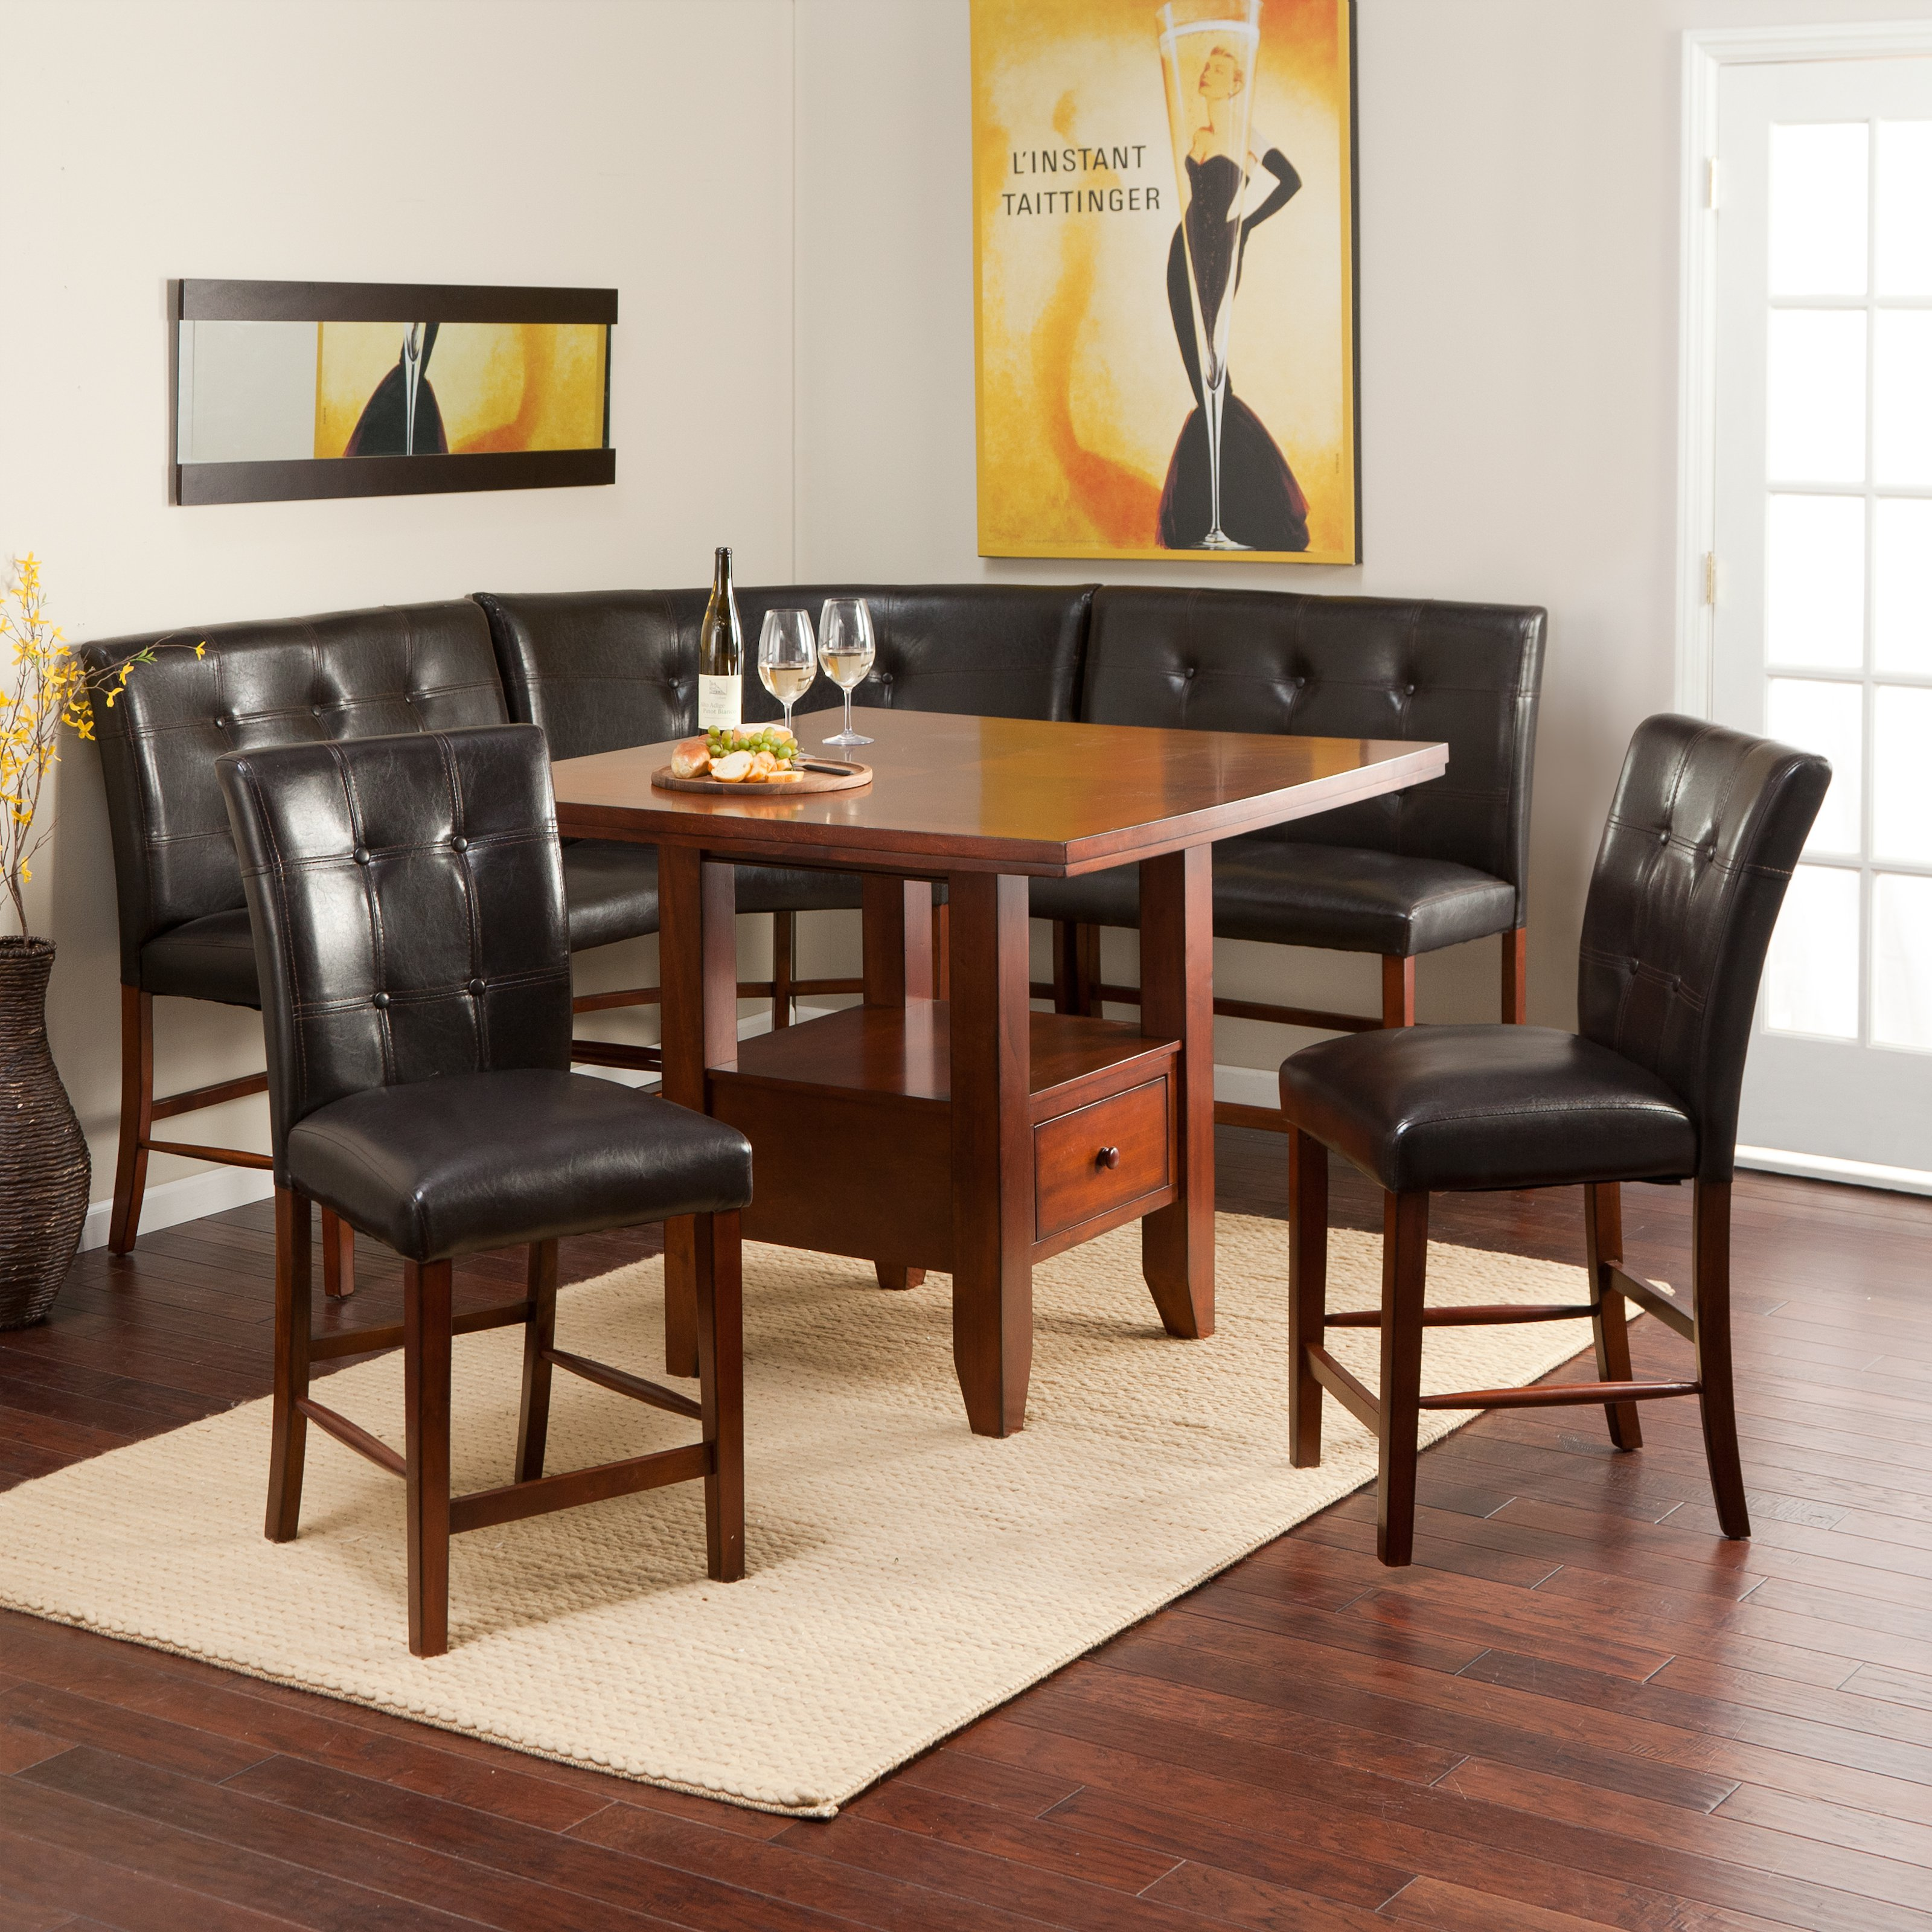 Ravella Counter Height 6 Piece Nook Set   Walmart.com